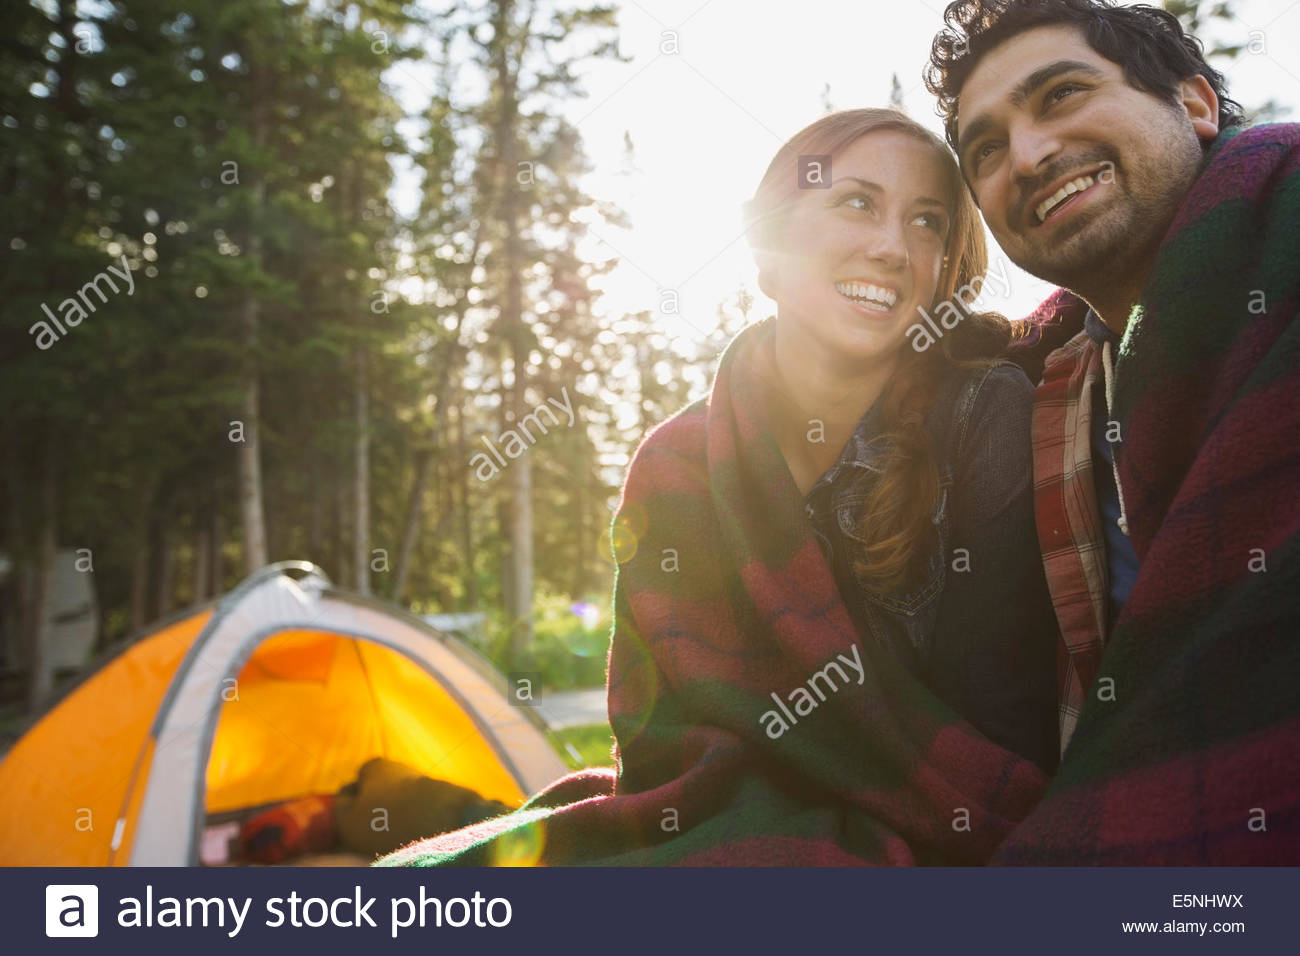 Couple wrapped in a blanket at campsite - Stock Image